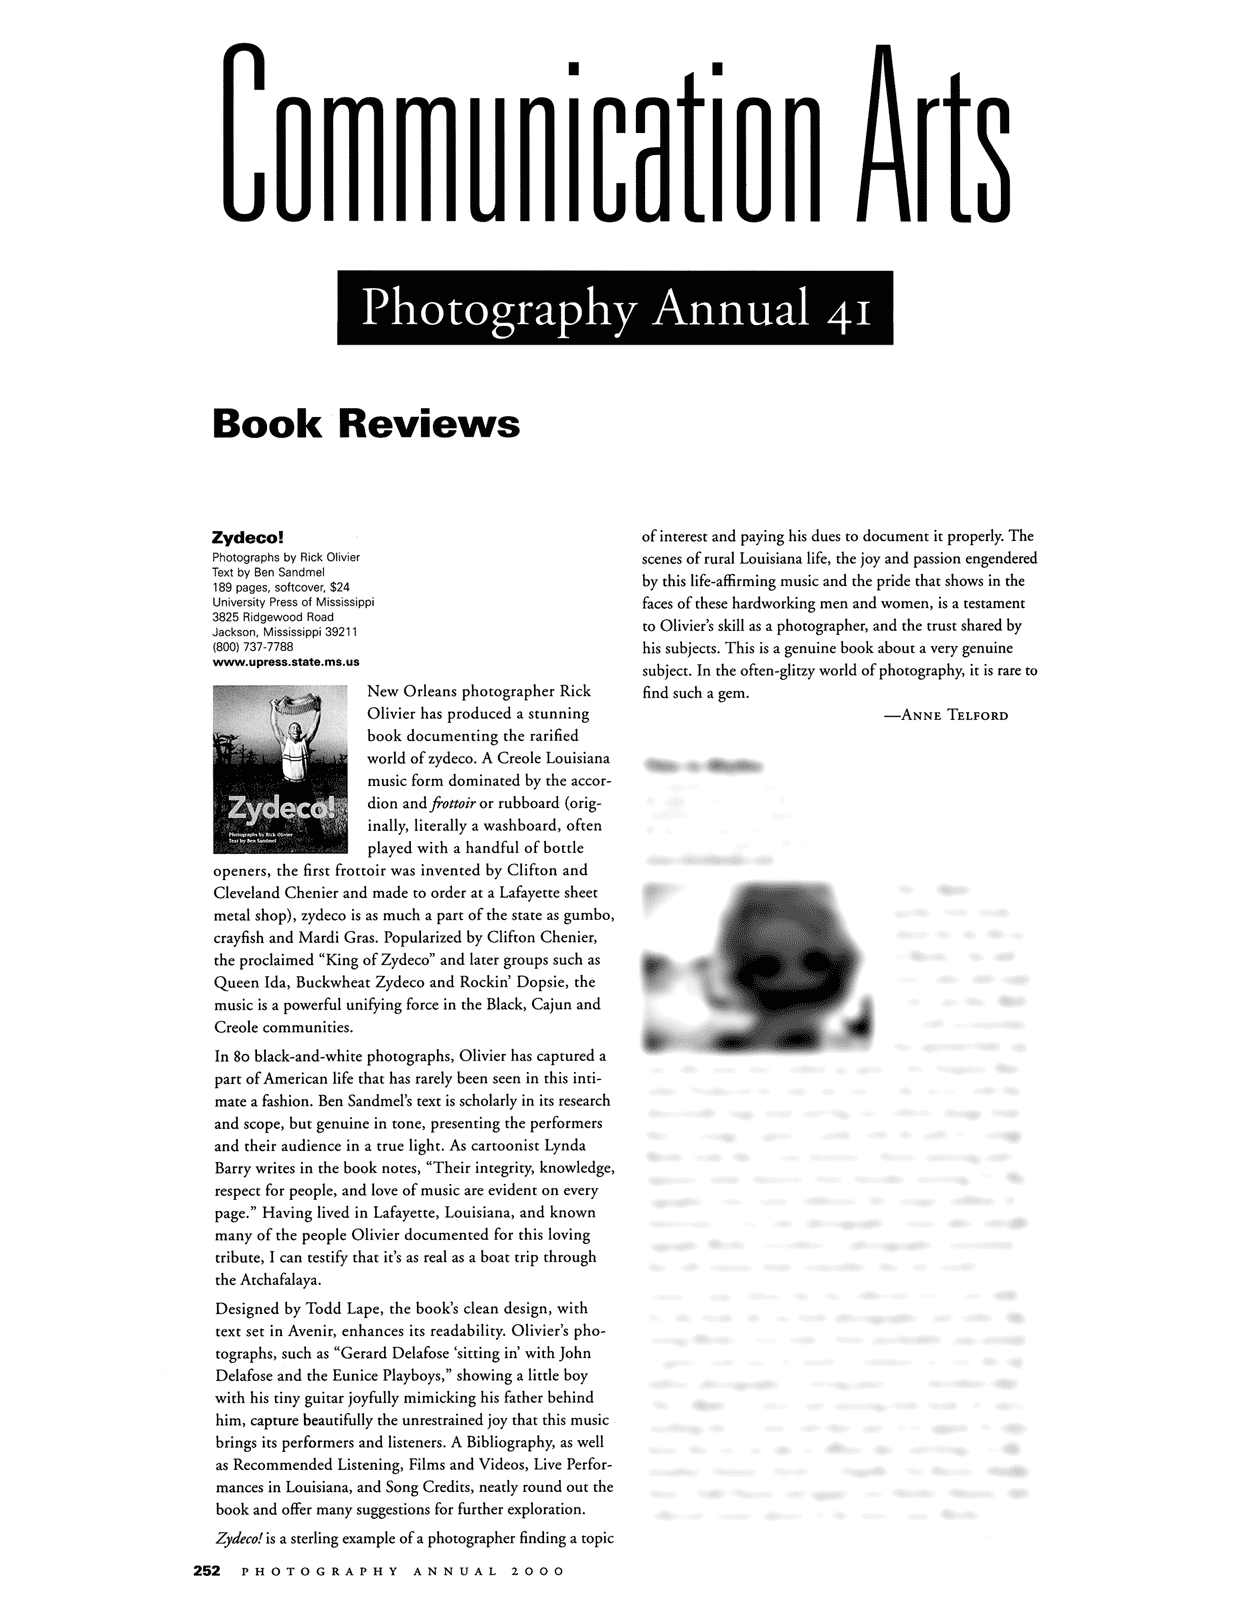 "Communication Arts Photography Annual review of ""Zydeco!"" book"